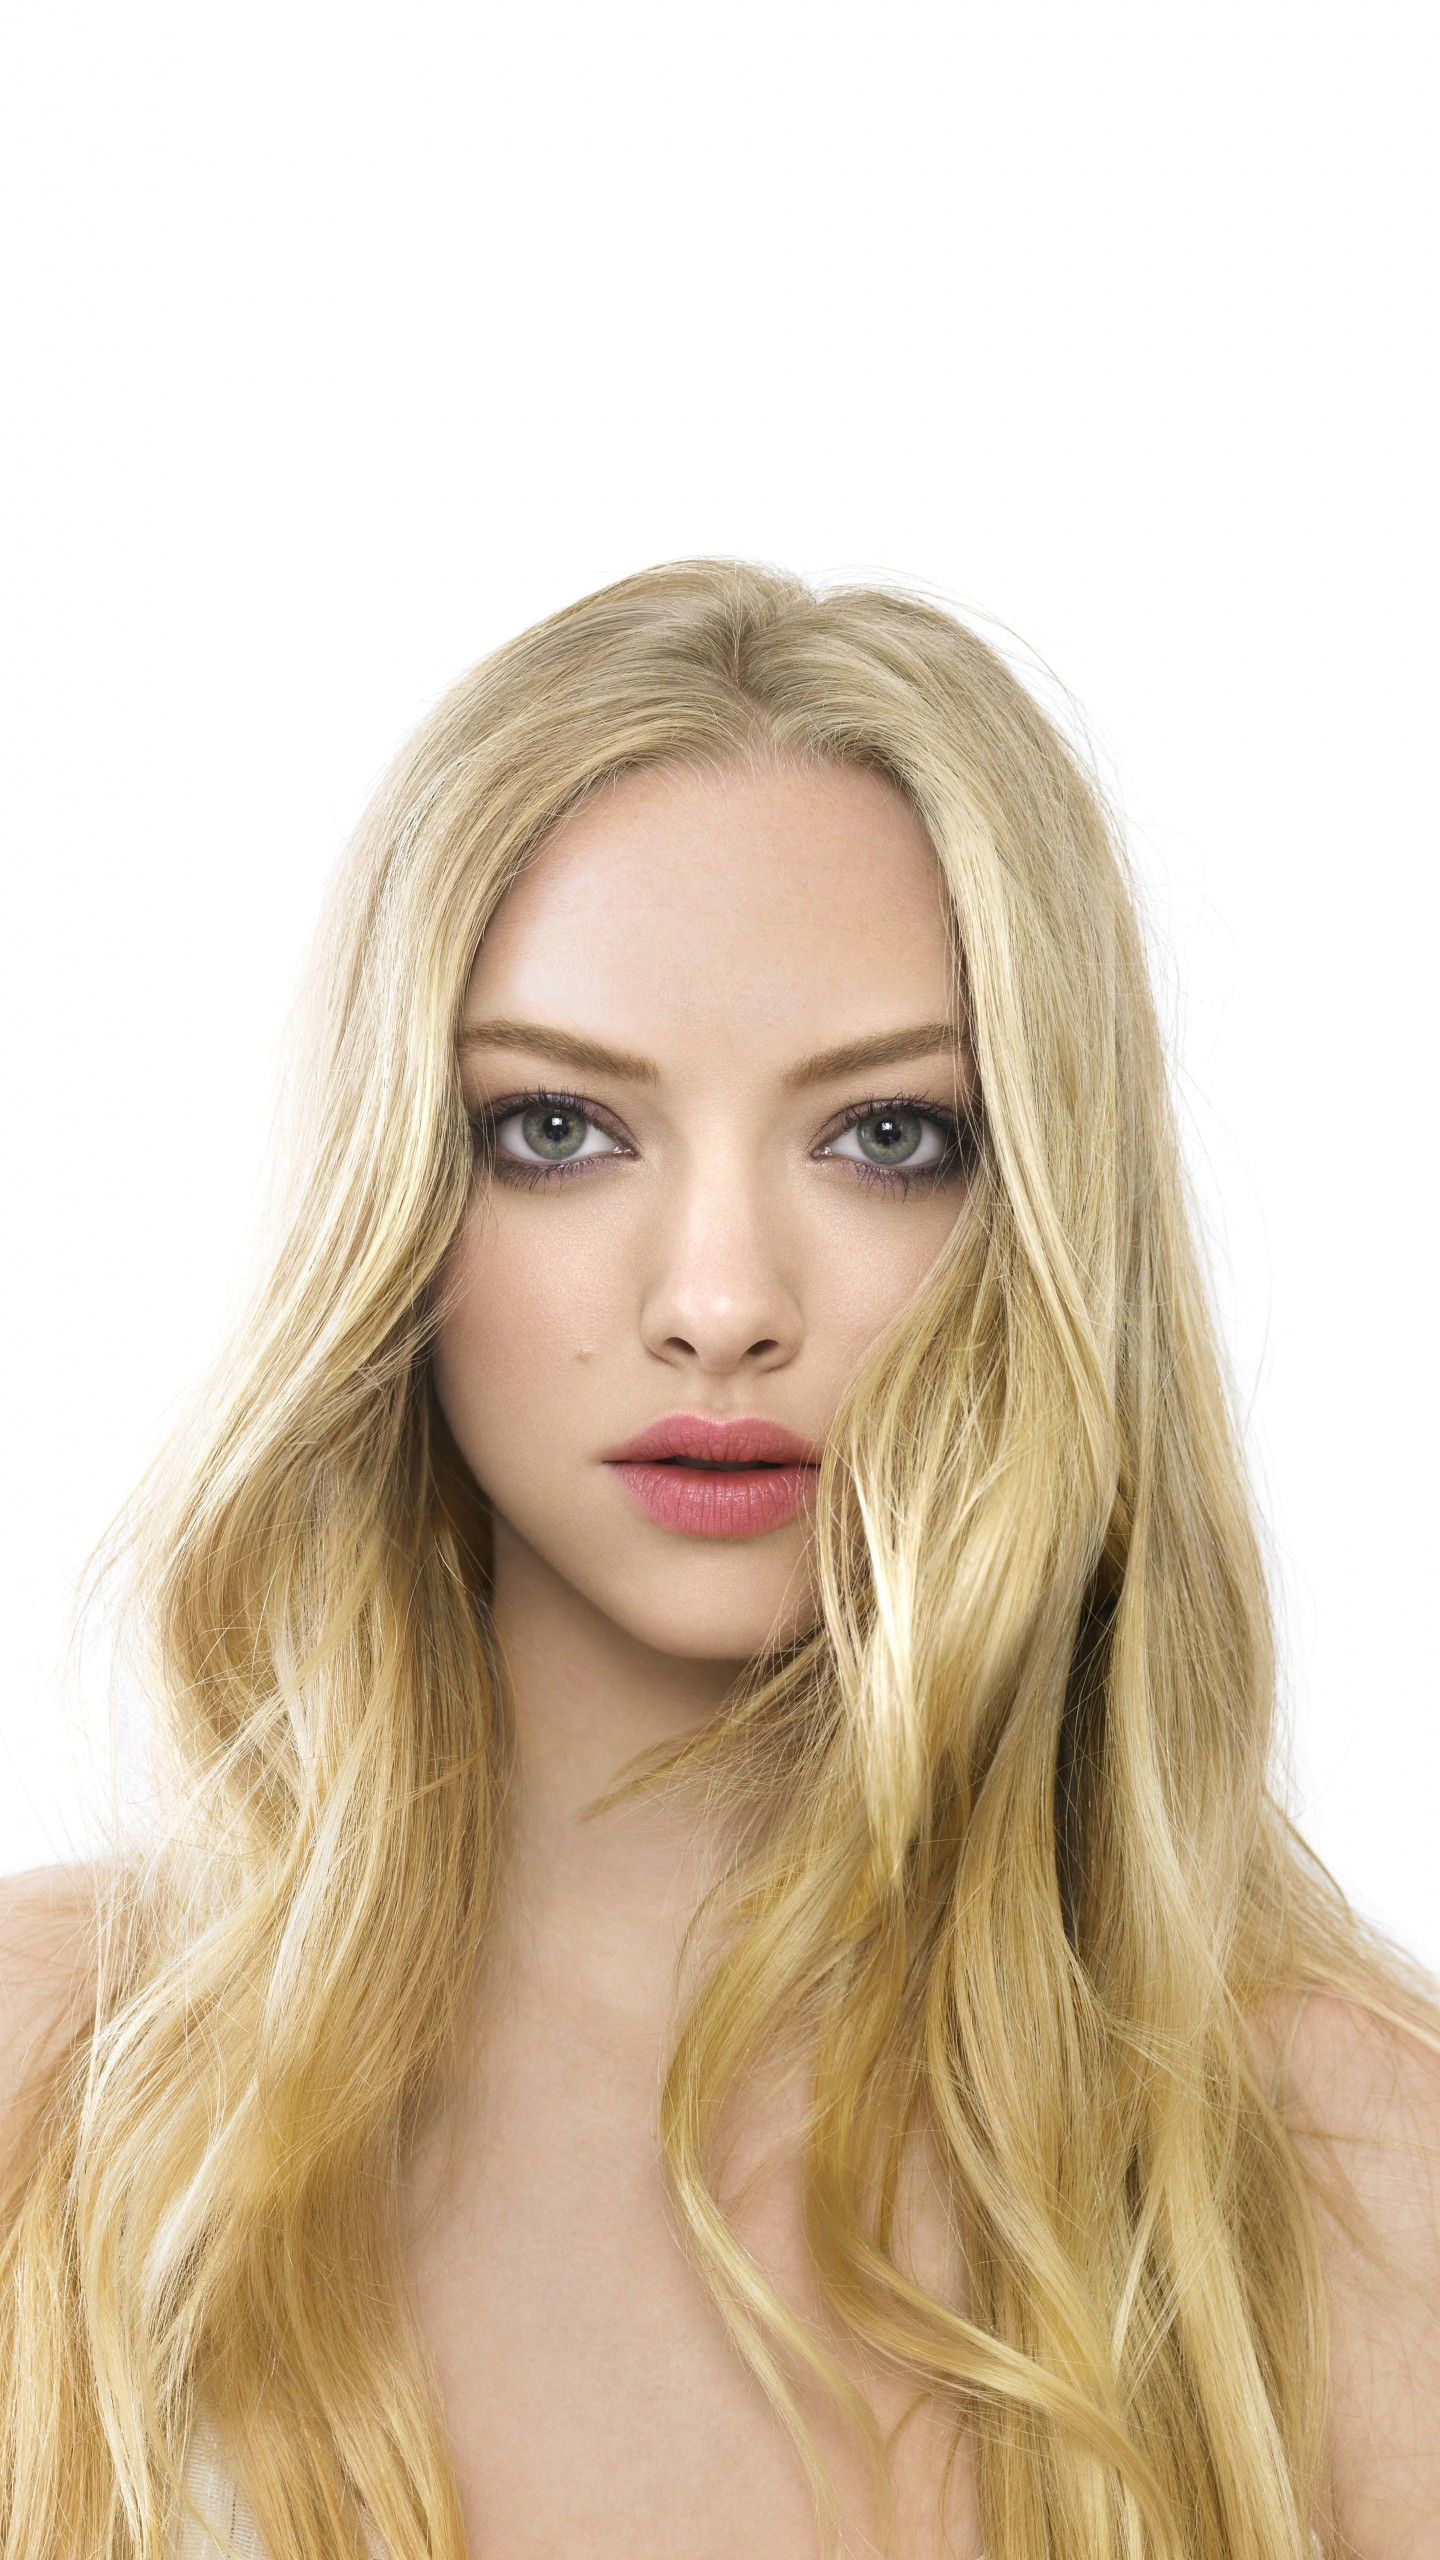 Amanda Seyfried Portrait Wallpaper for SAMSUNG Galaxy Note 4